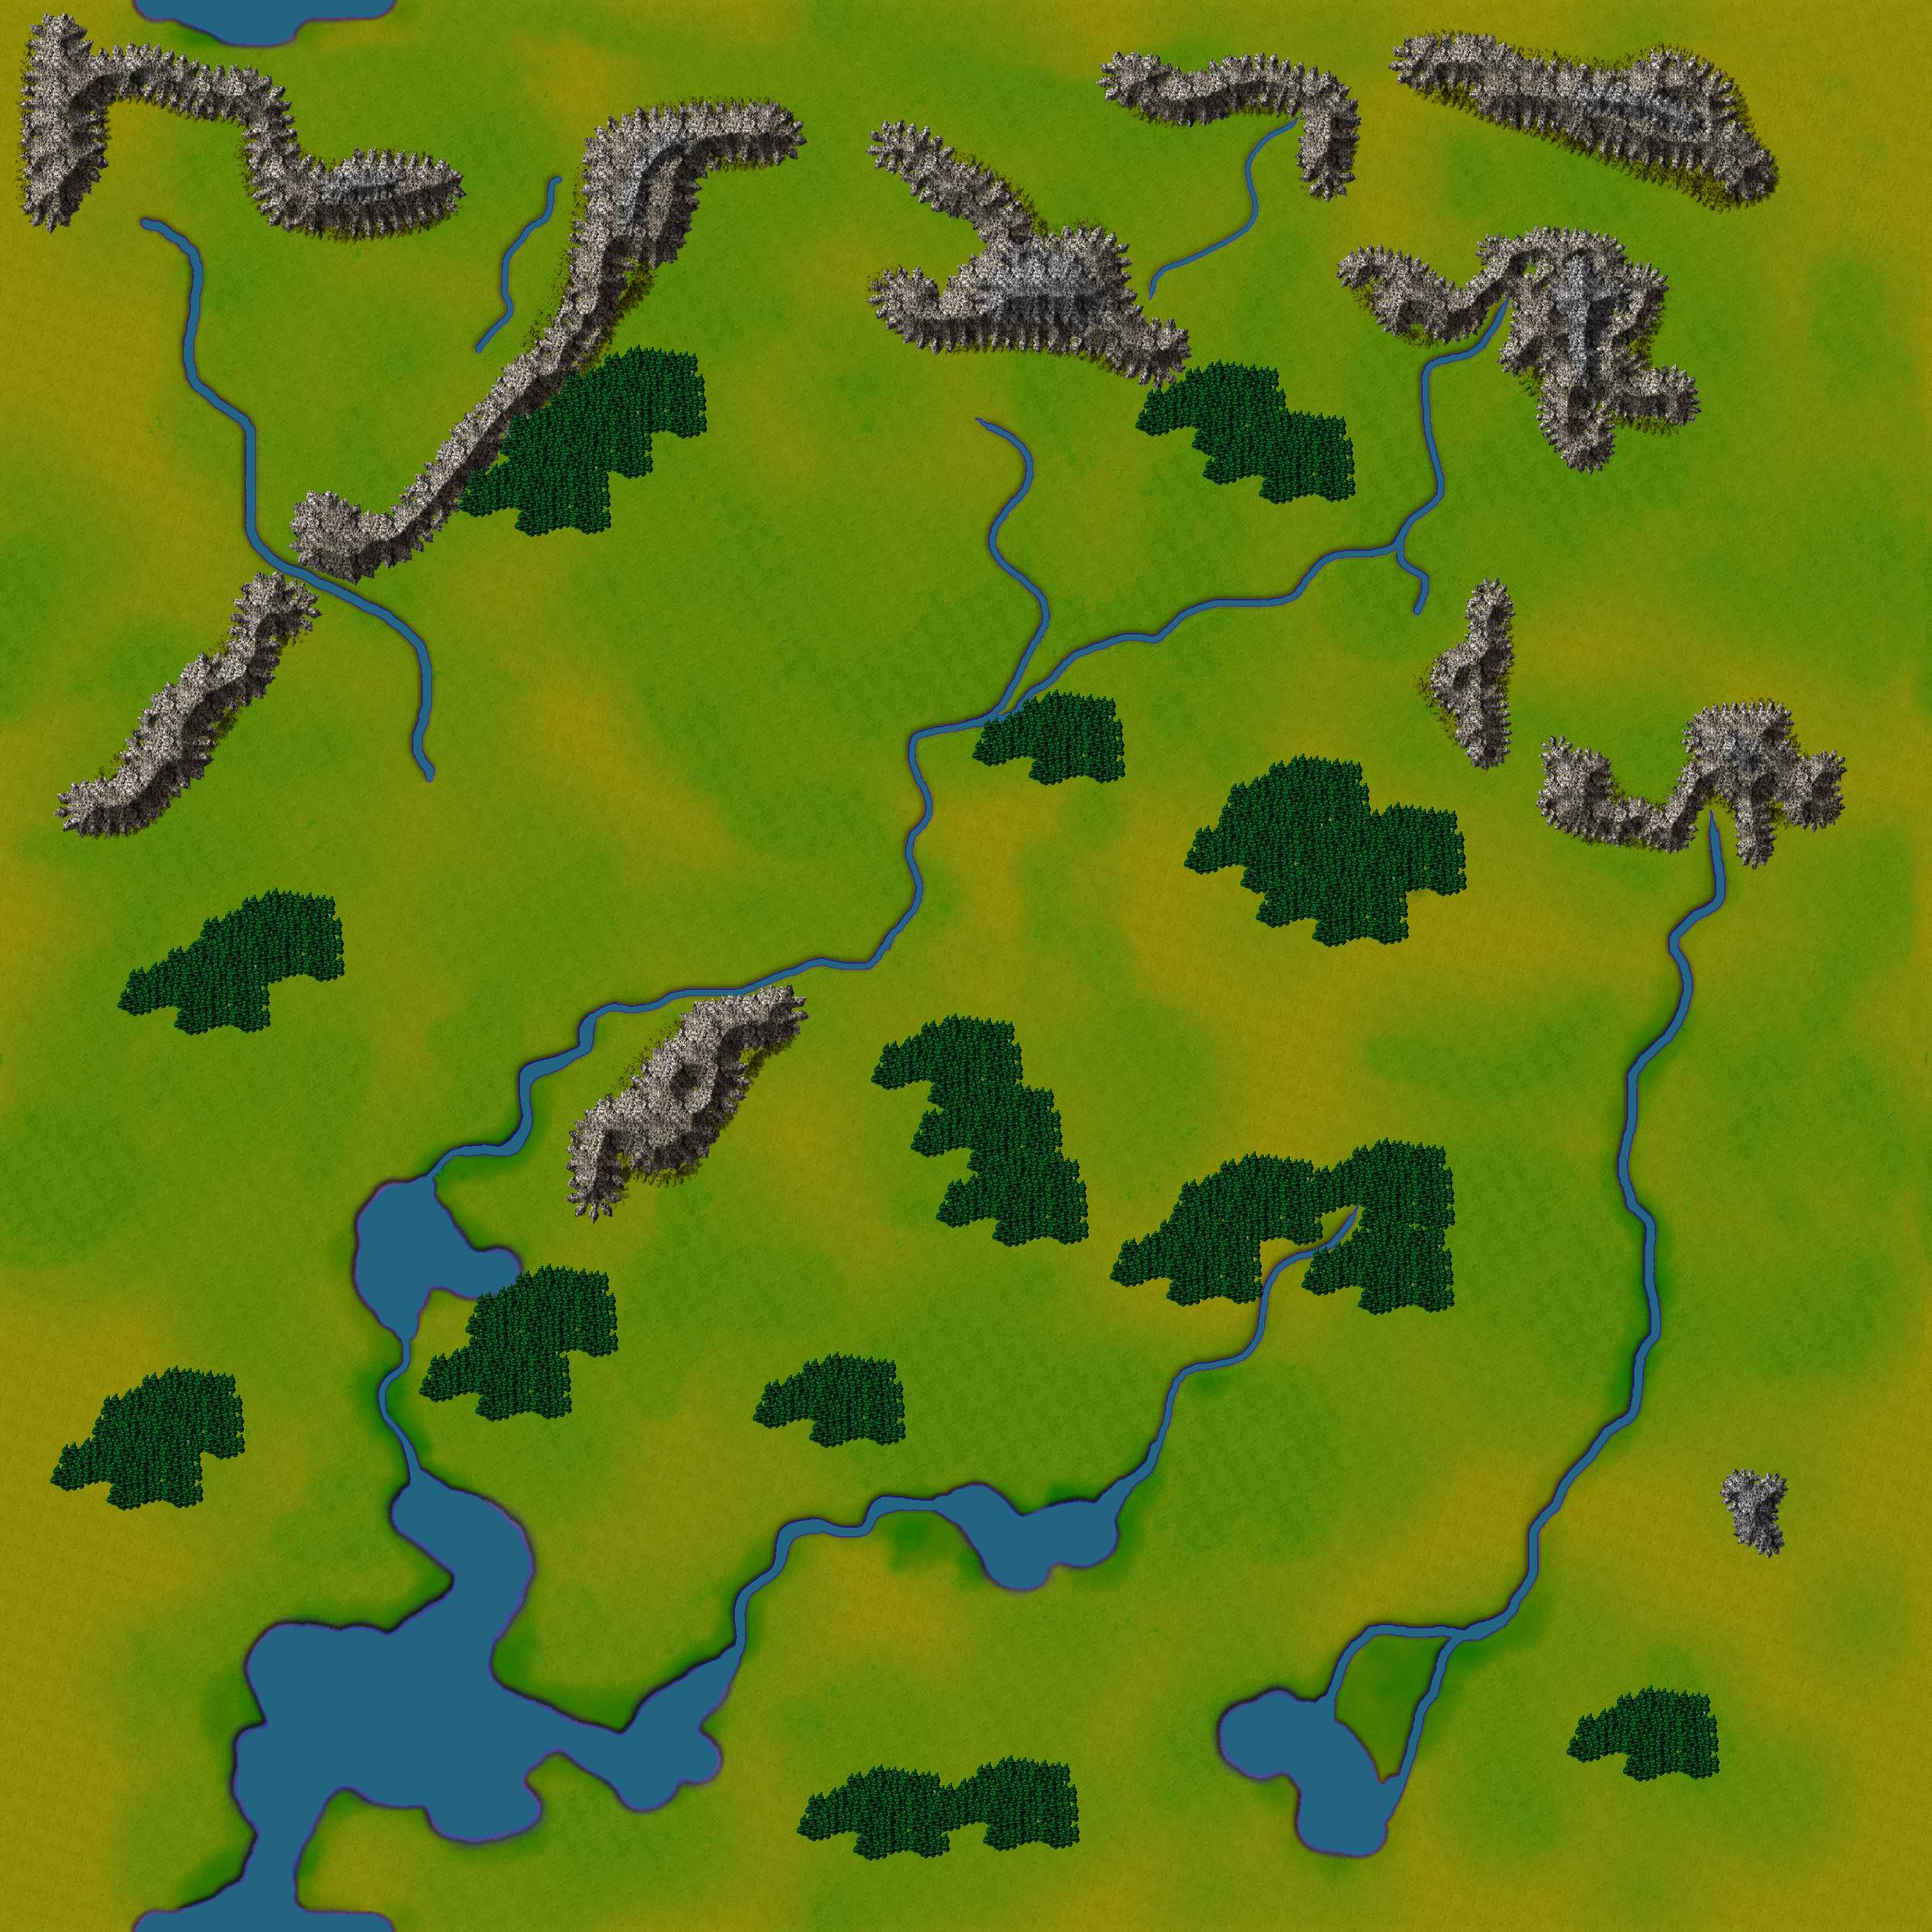 Unpaid browser game map very old map gumiabroncs